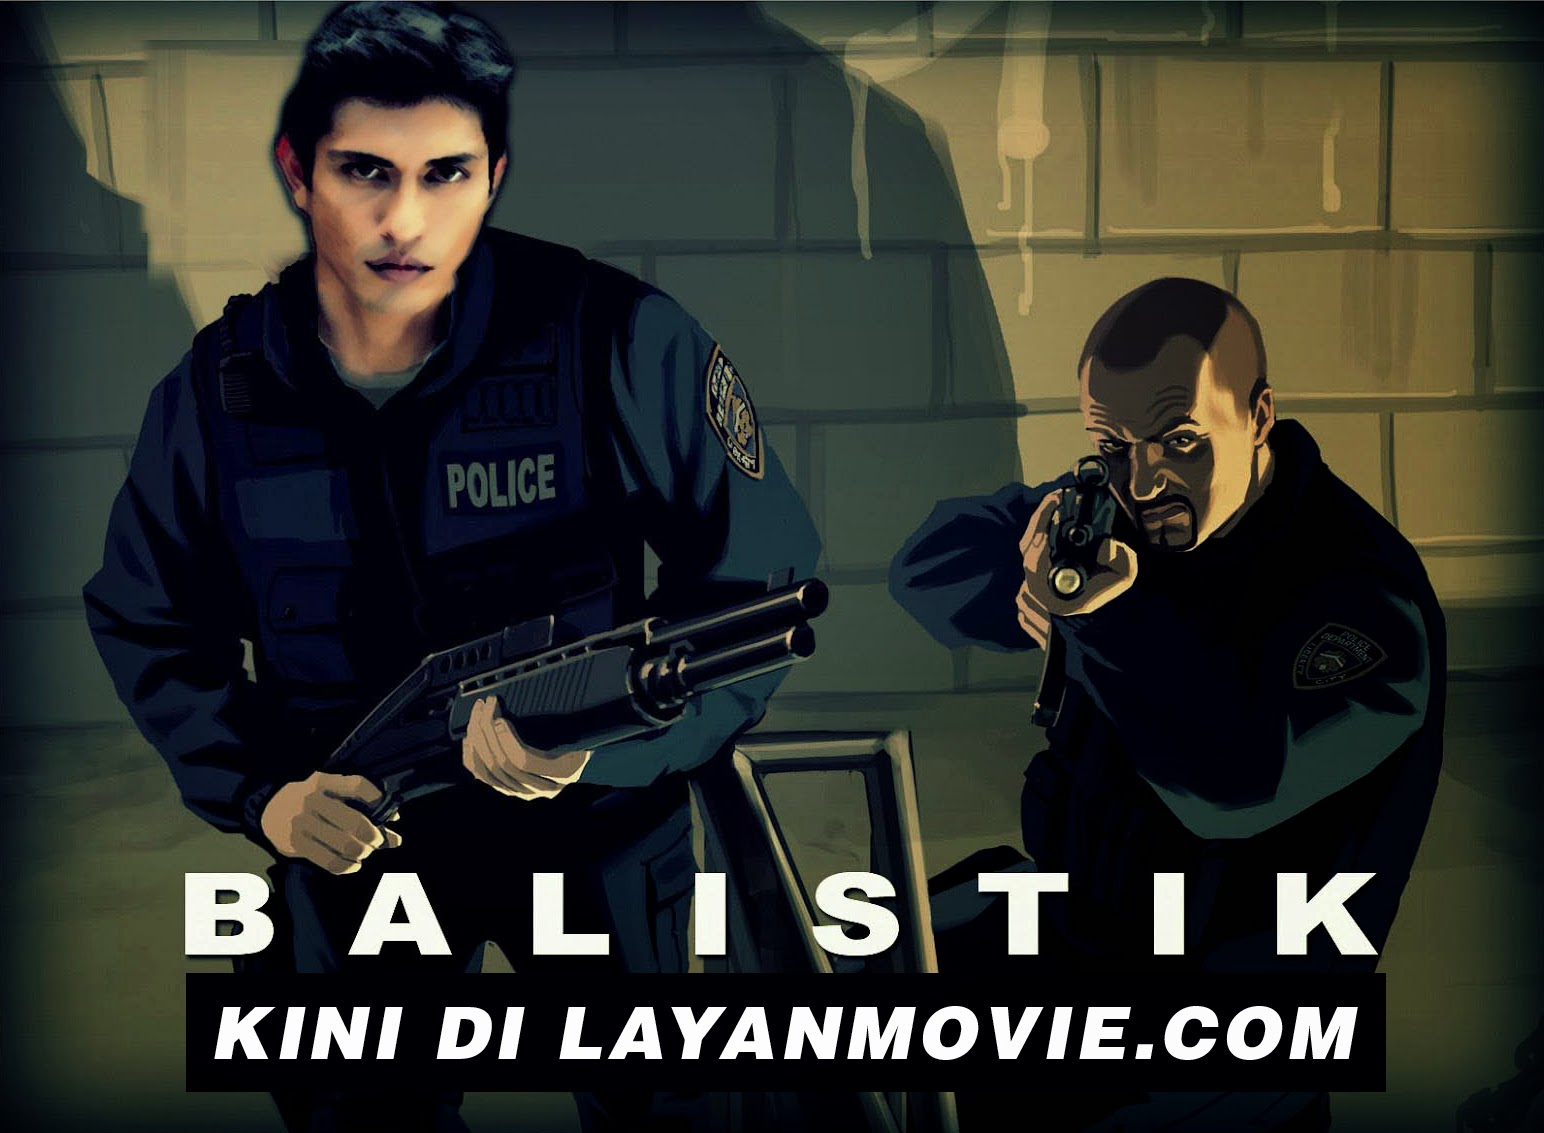 Tonton Balistik Full Movie 2014 Single Link